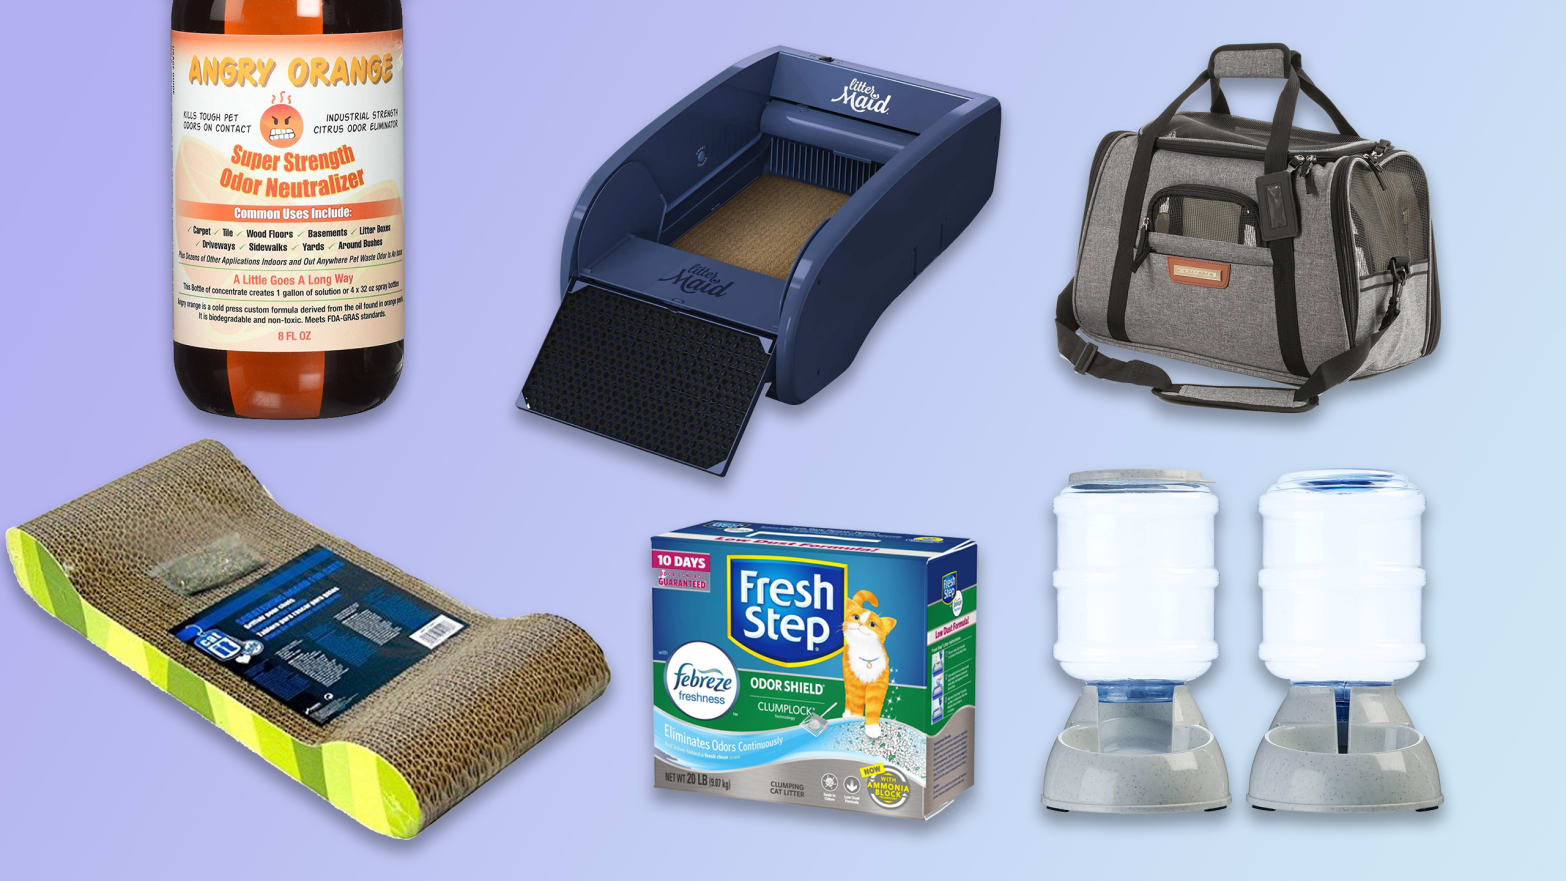 Cat Essentials Like Litter Boxes, Feeding Bowls, Carrying Cases, And More